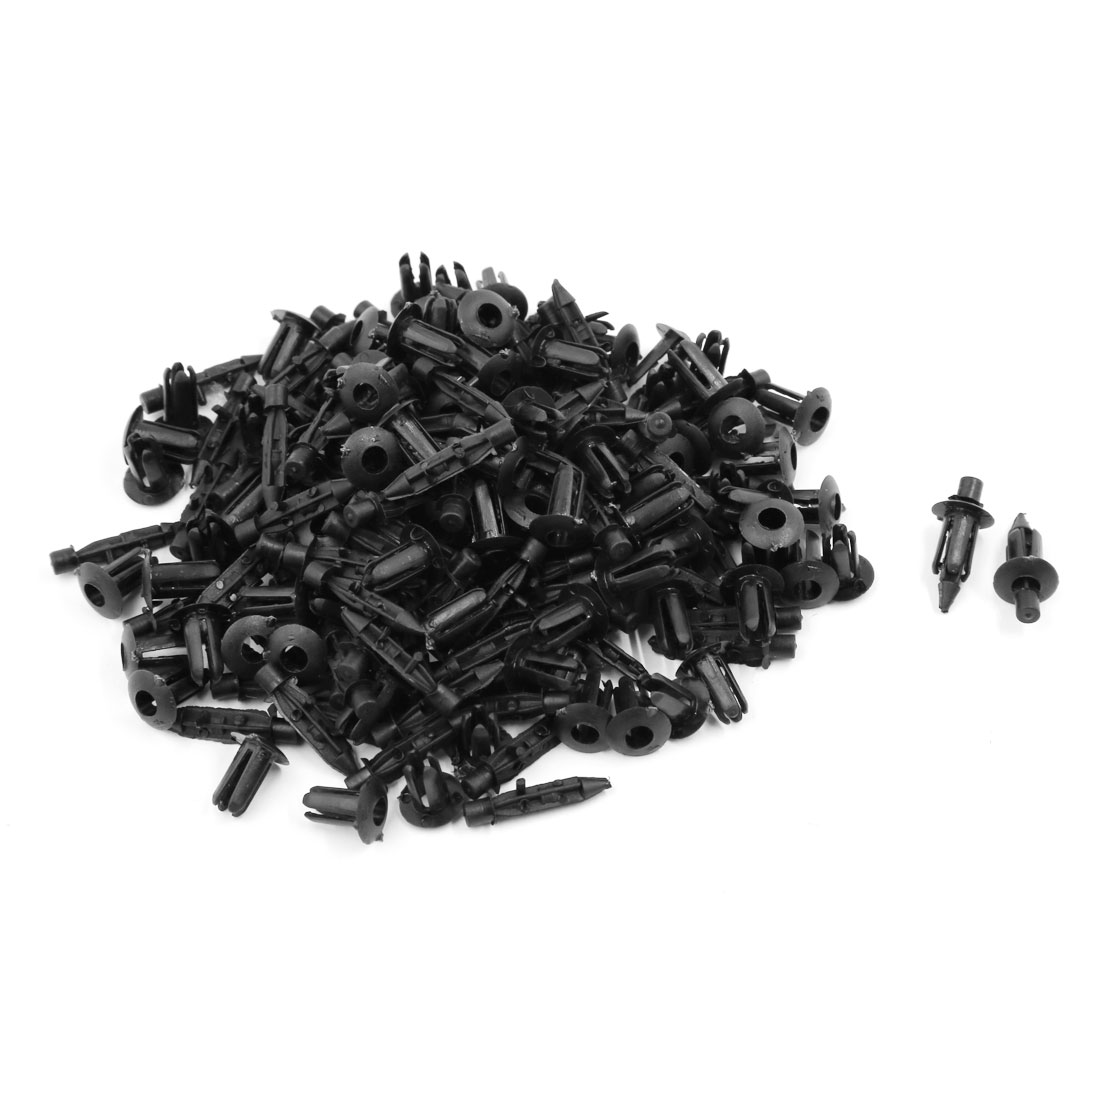 100 Pcs 6mm Black Plastic Push-Type Rivets Fastener Fender Clips